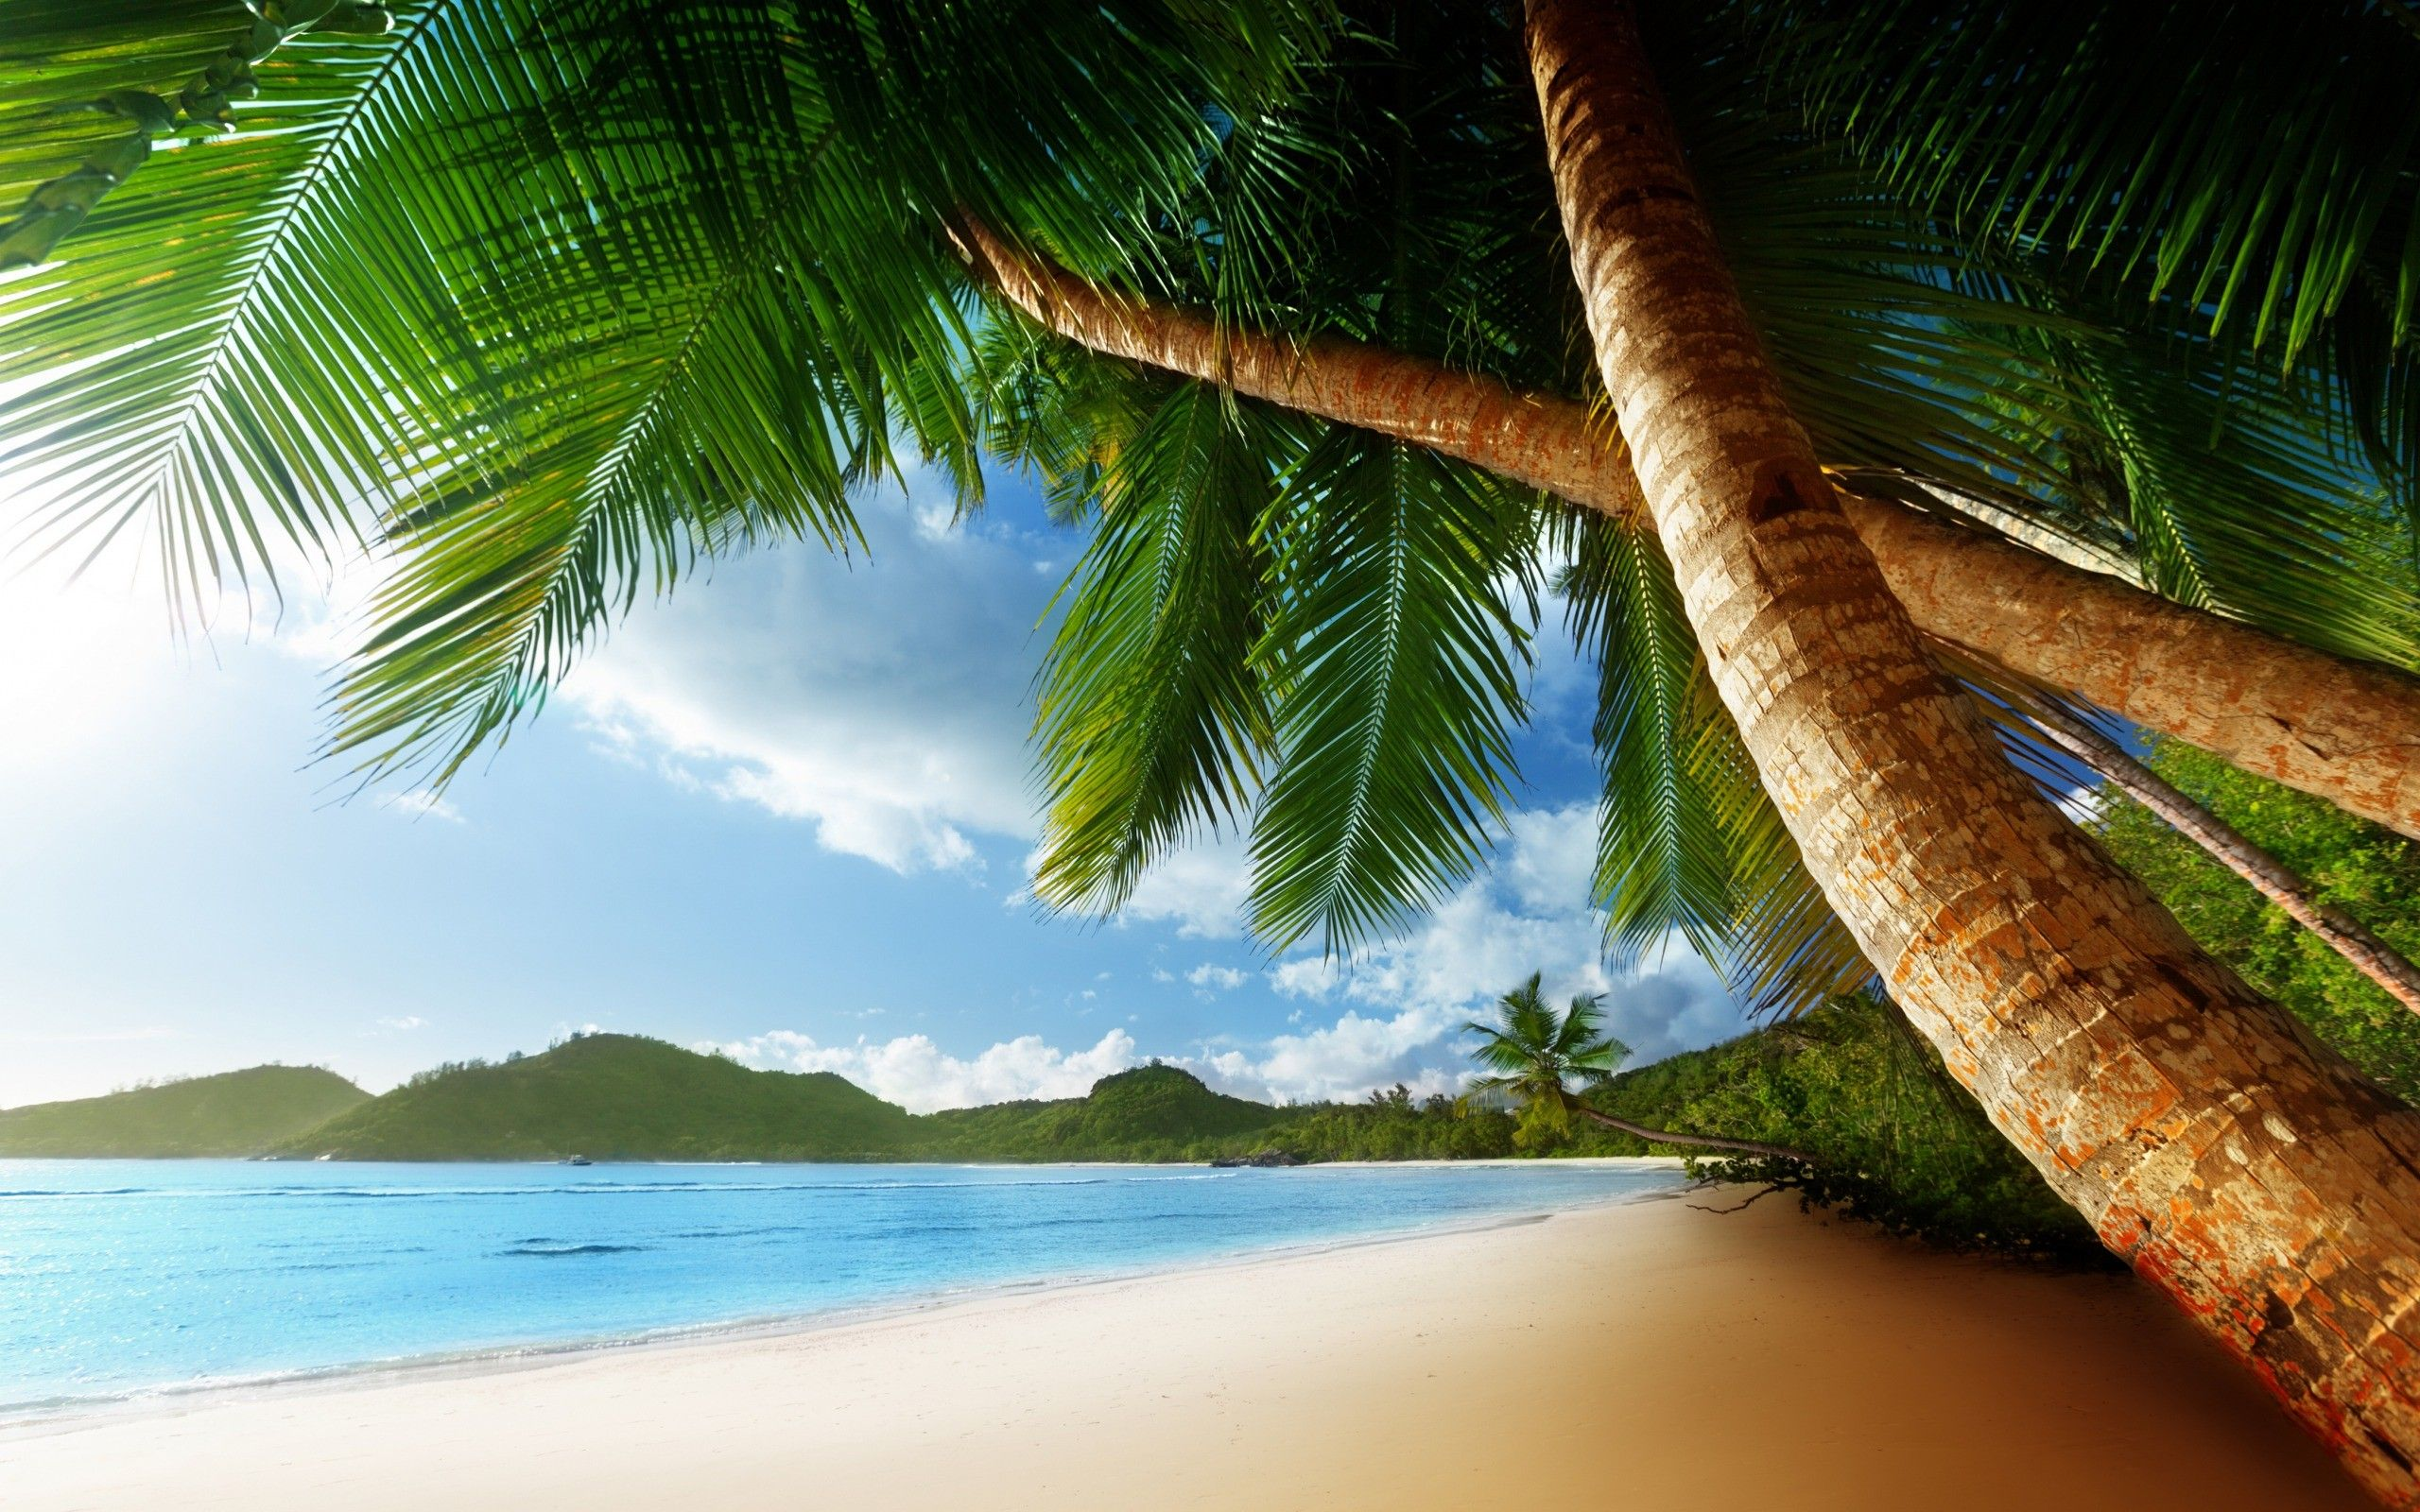 Painting Of Islands With Palms Tropical Palm Trees Beach Ocean Trees Wallpaper Background Beach Wall Murals Beach Wallpaper Palm Trees Wallpaper